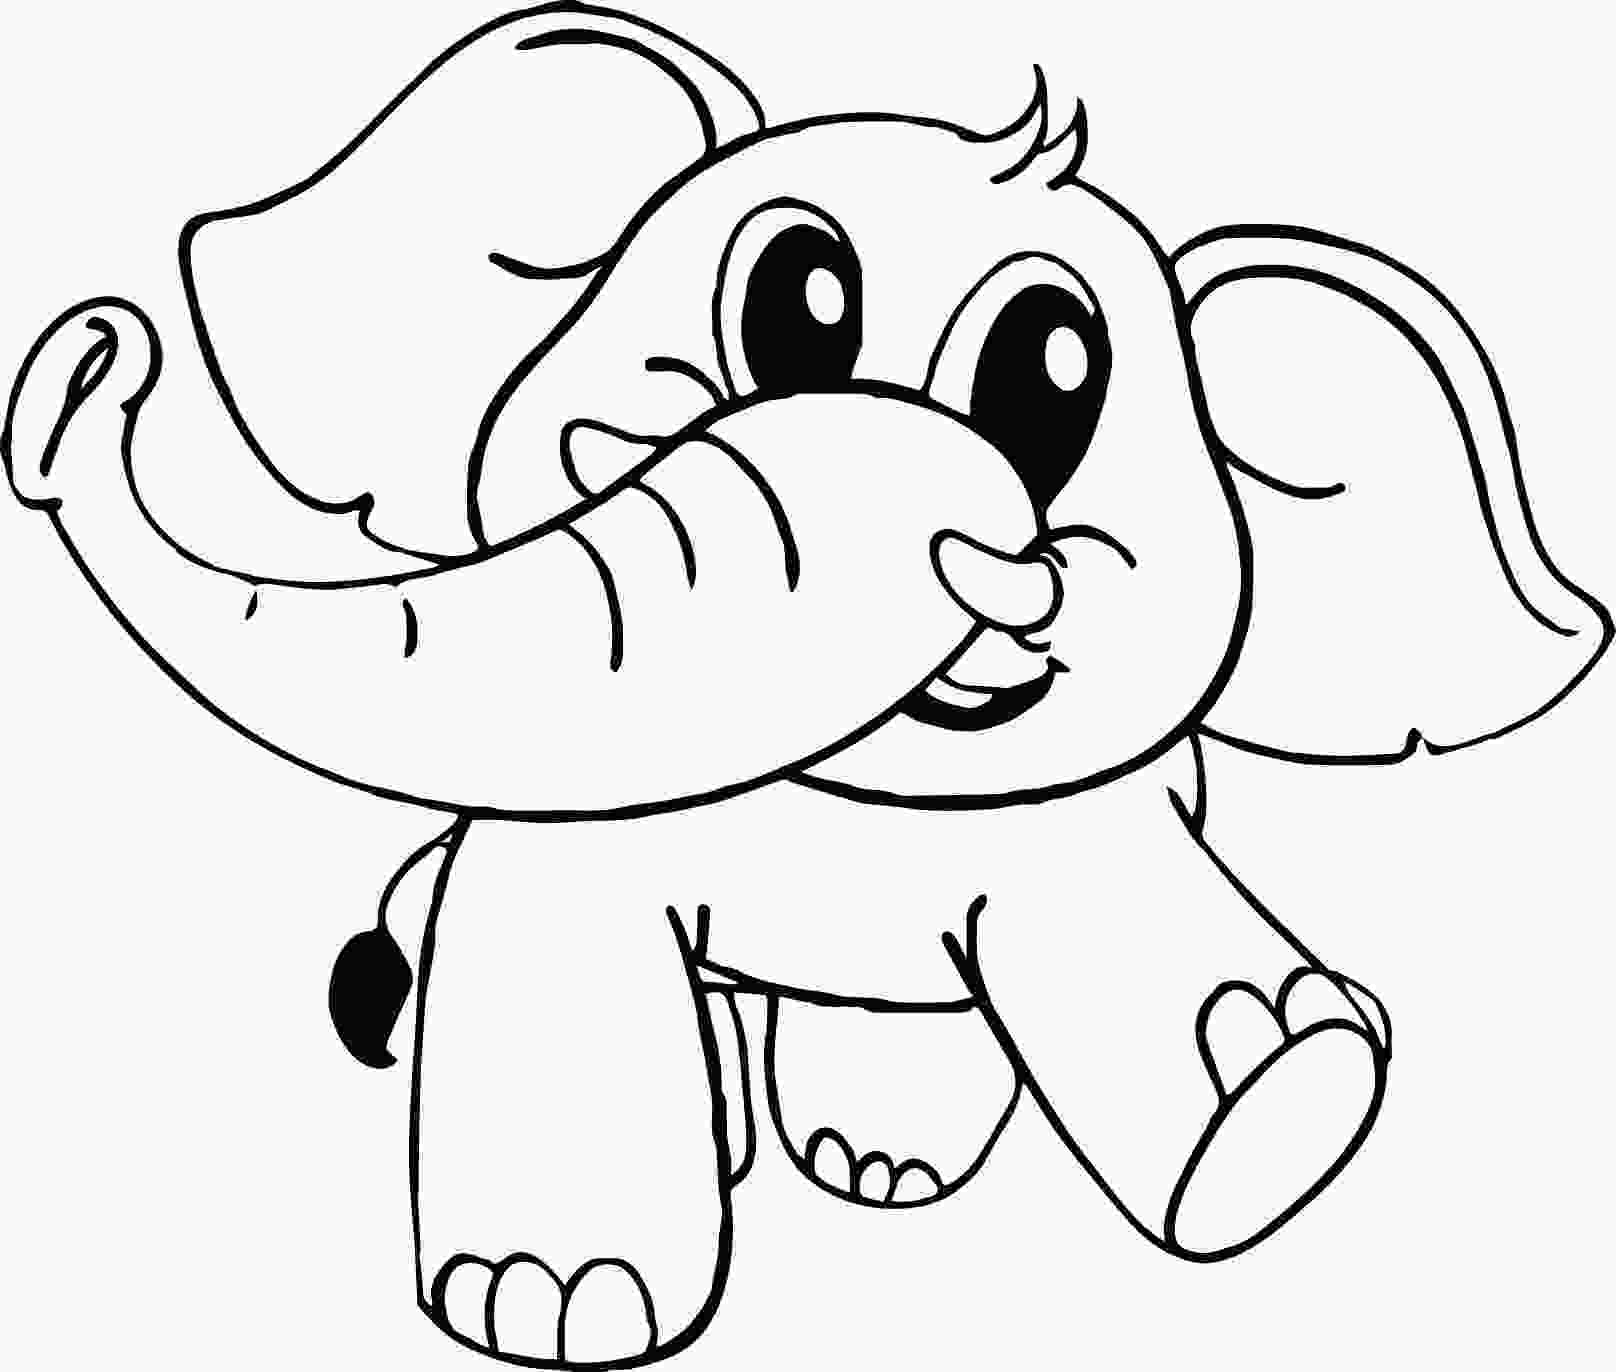 baby elephant coloring page baby cartoon elephant coloring page wecoloringpagecom